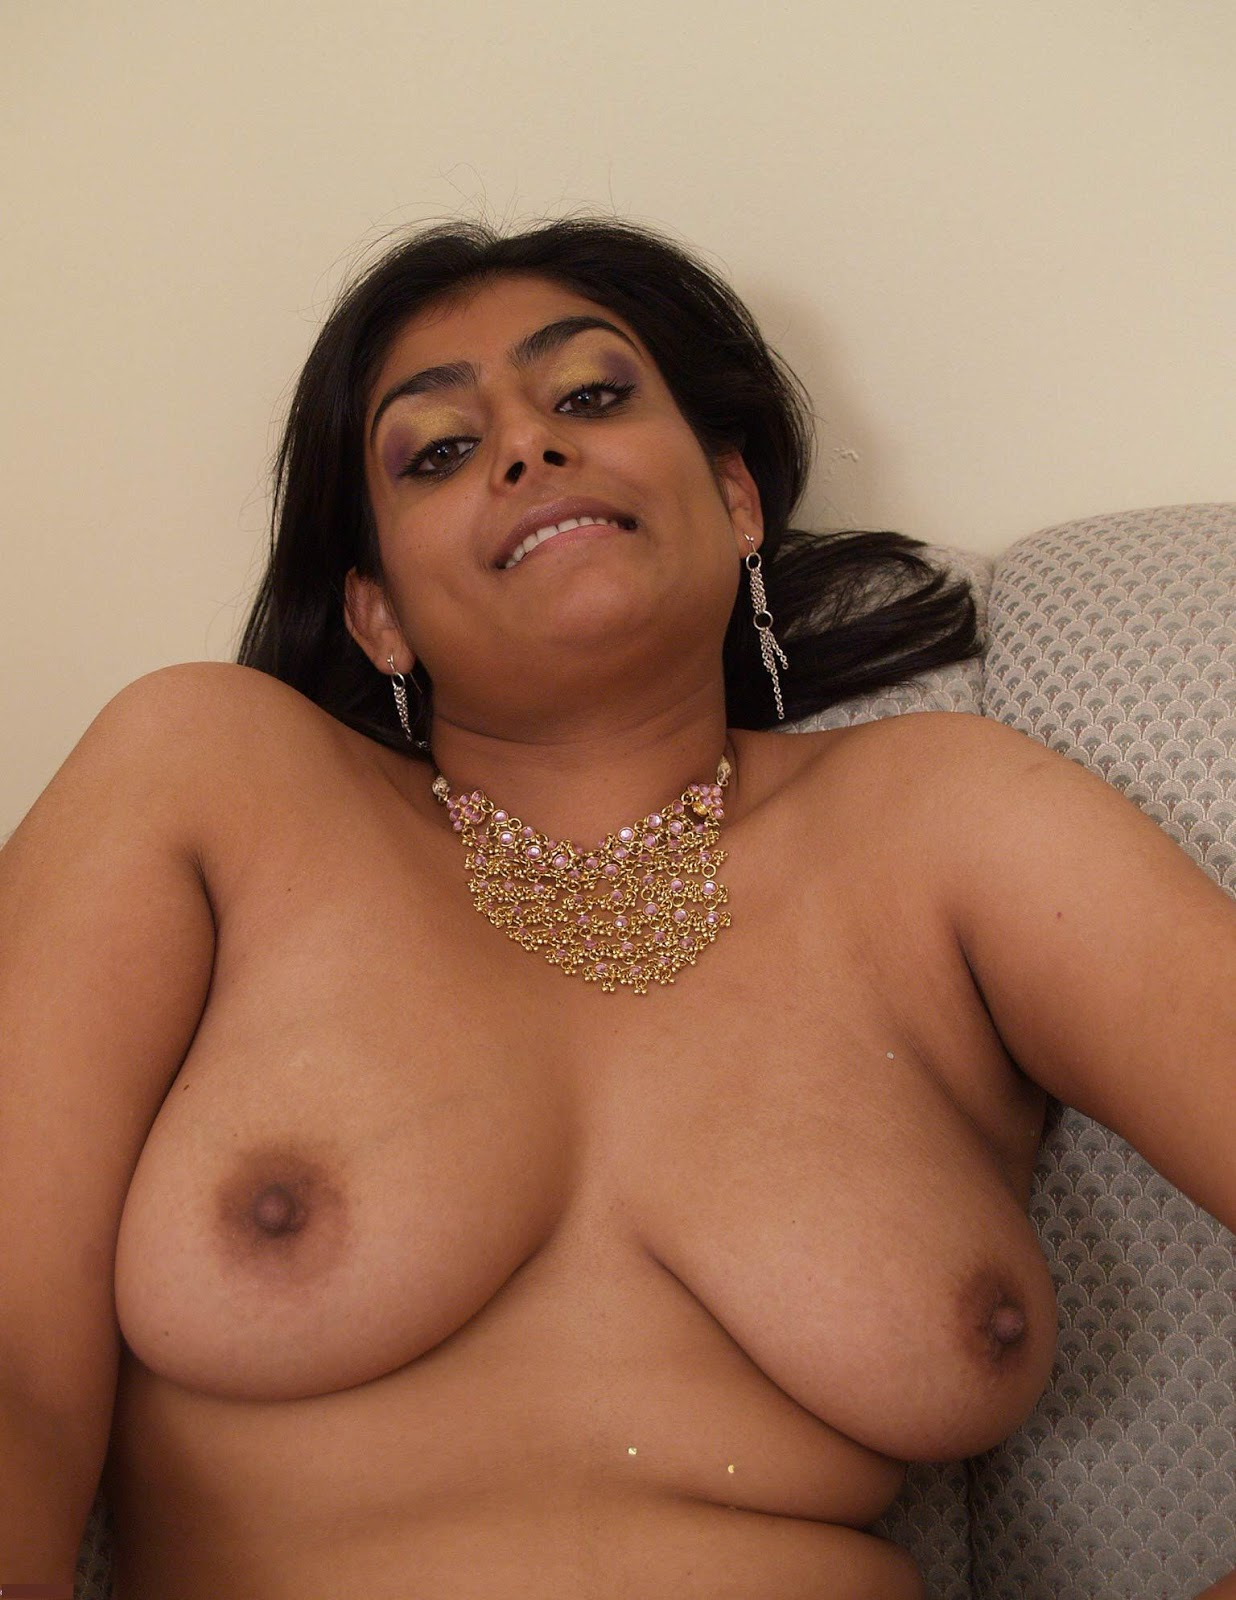 nude voluptuous ebony women